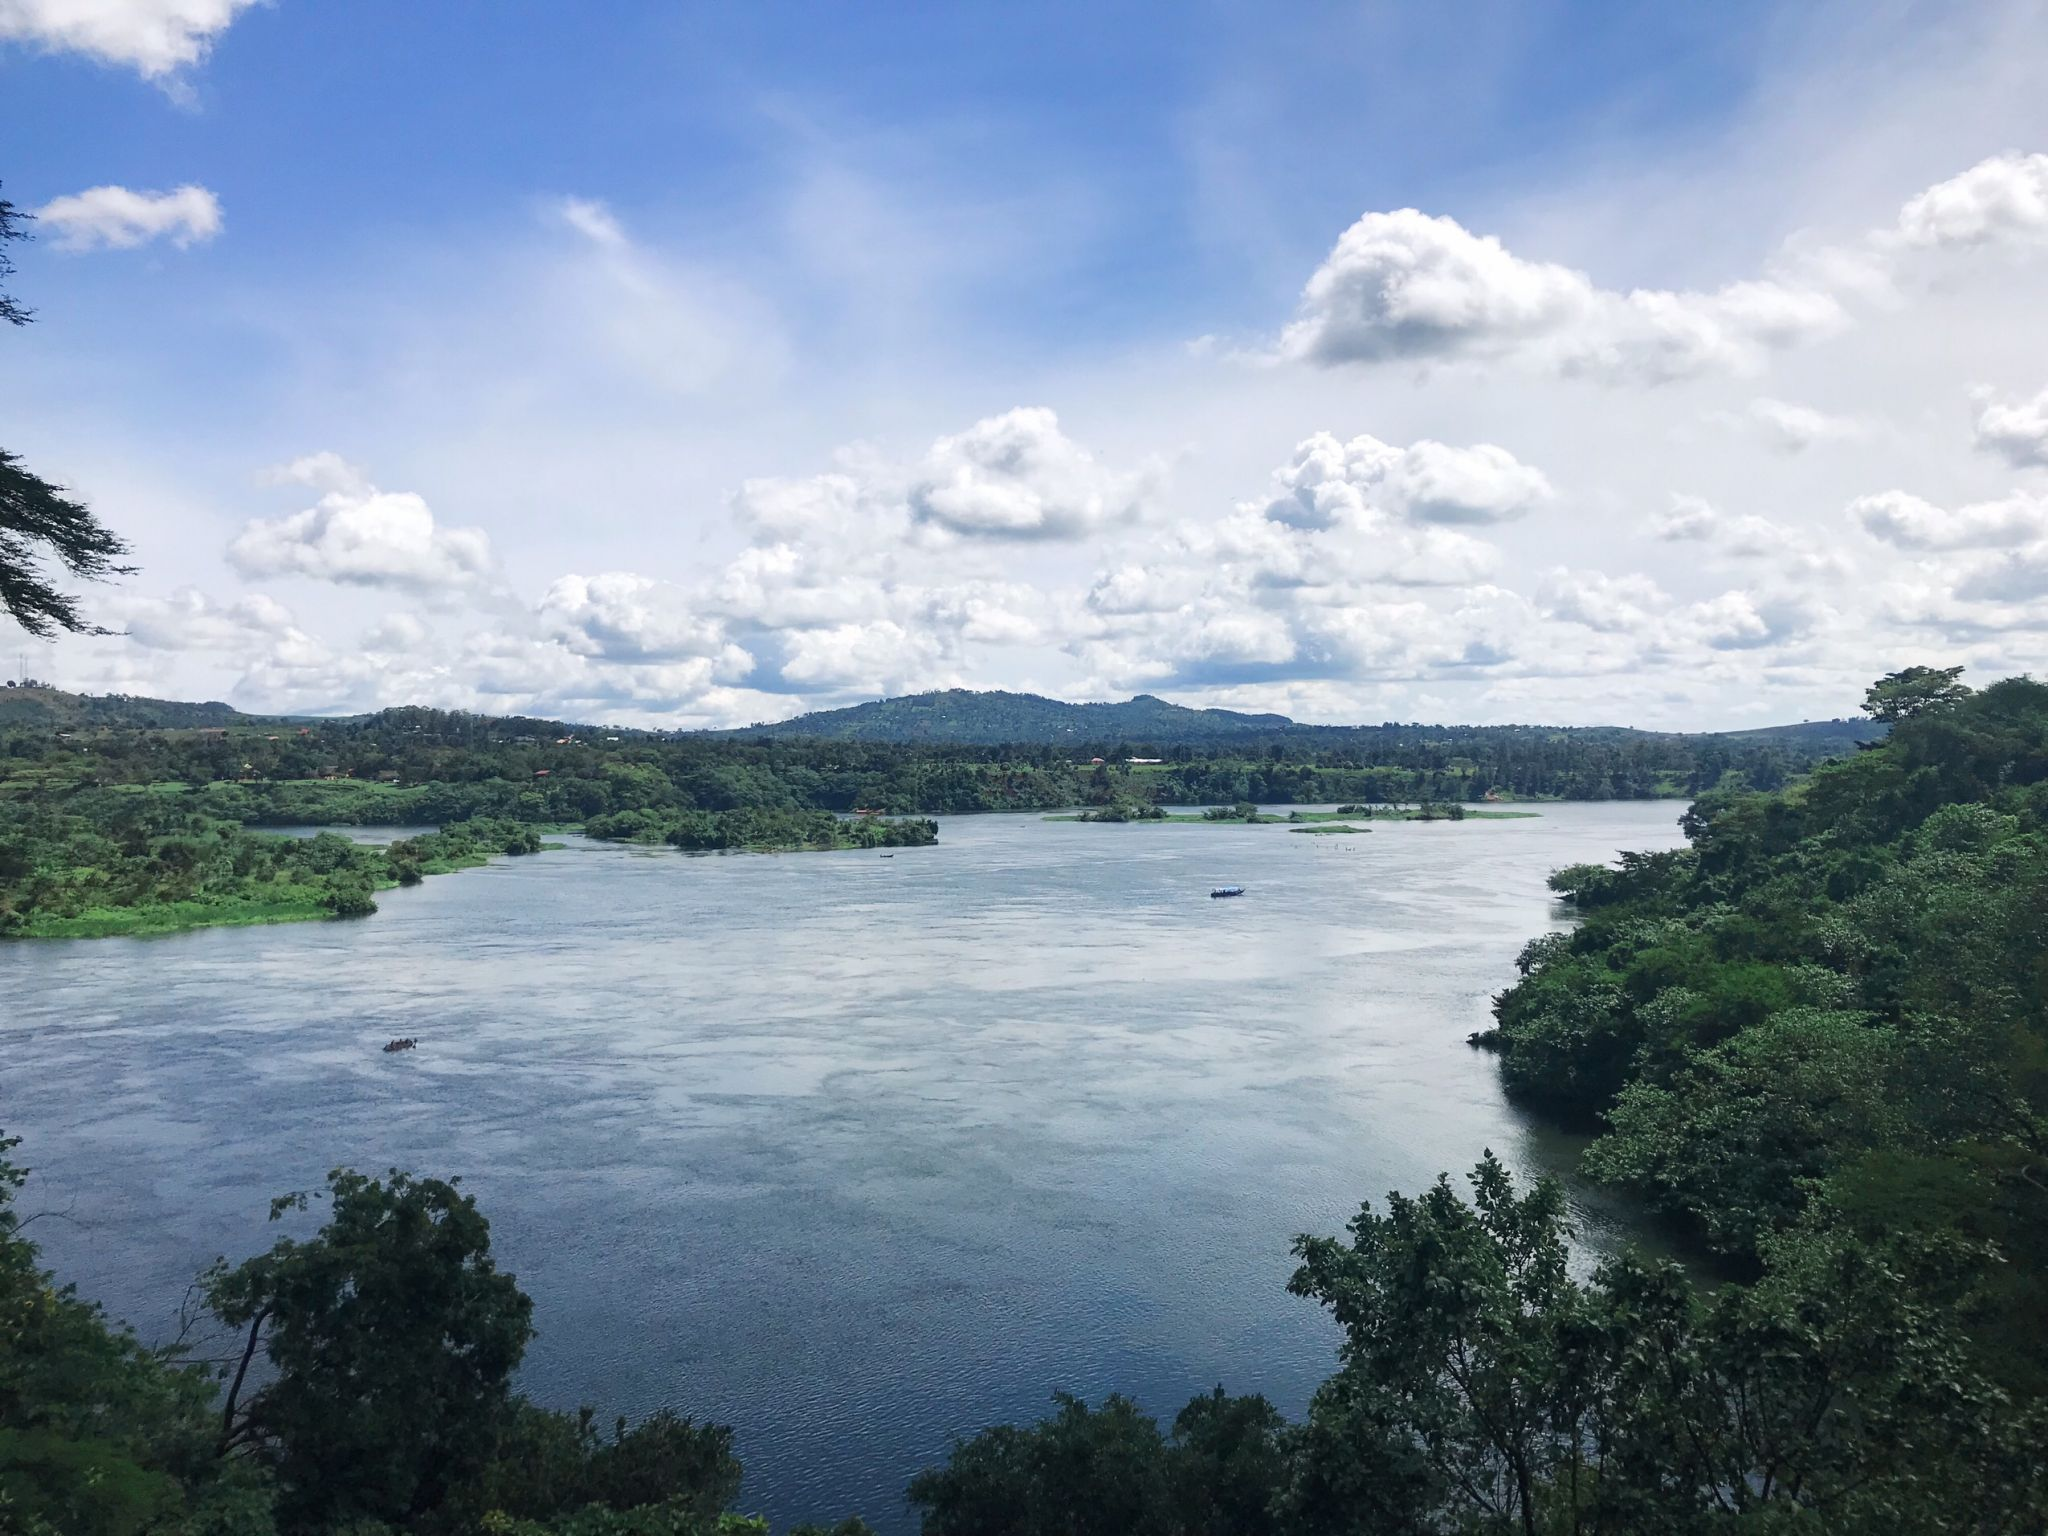 Image of the Nile from Jinja river bank